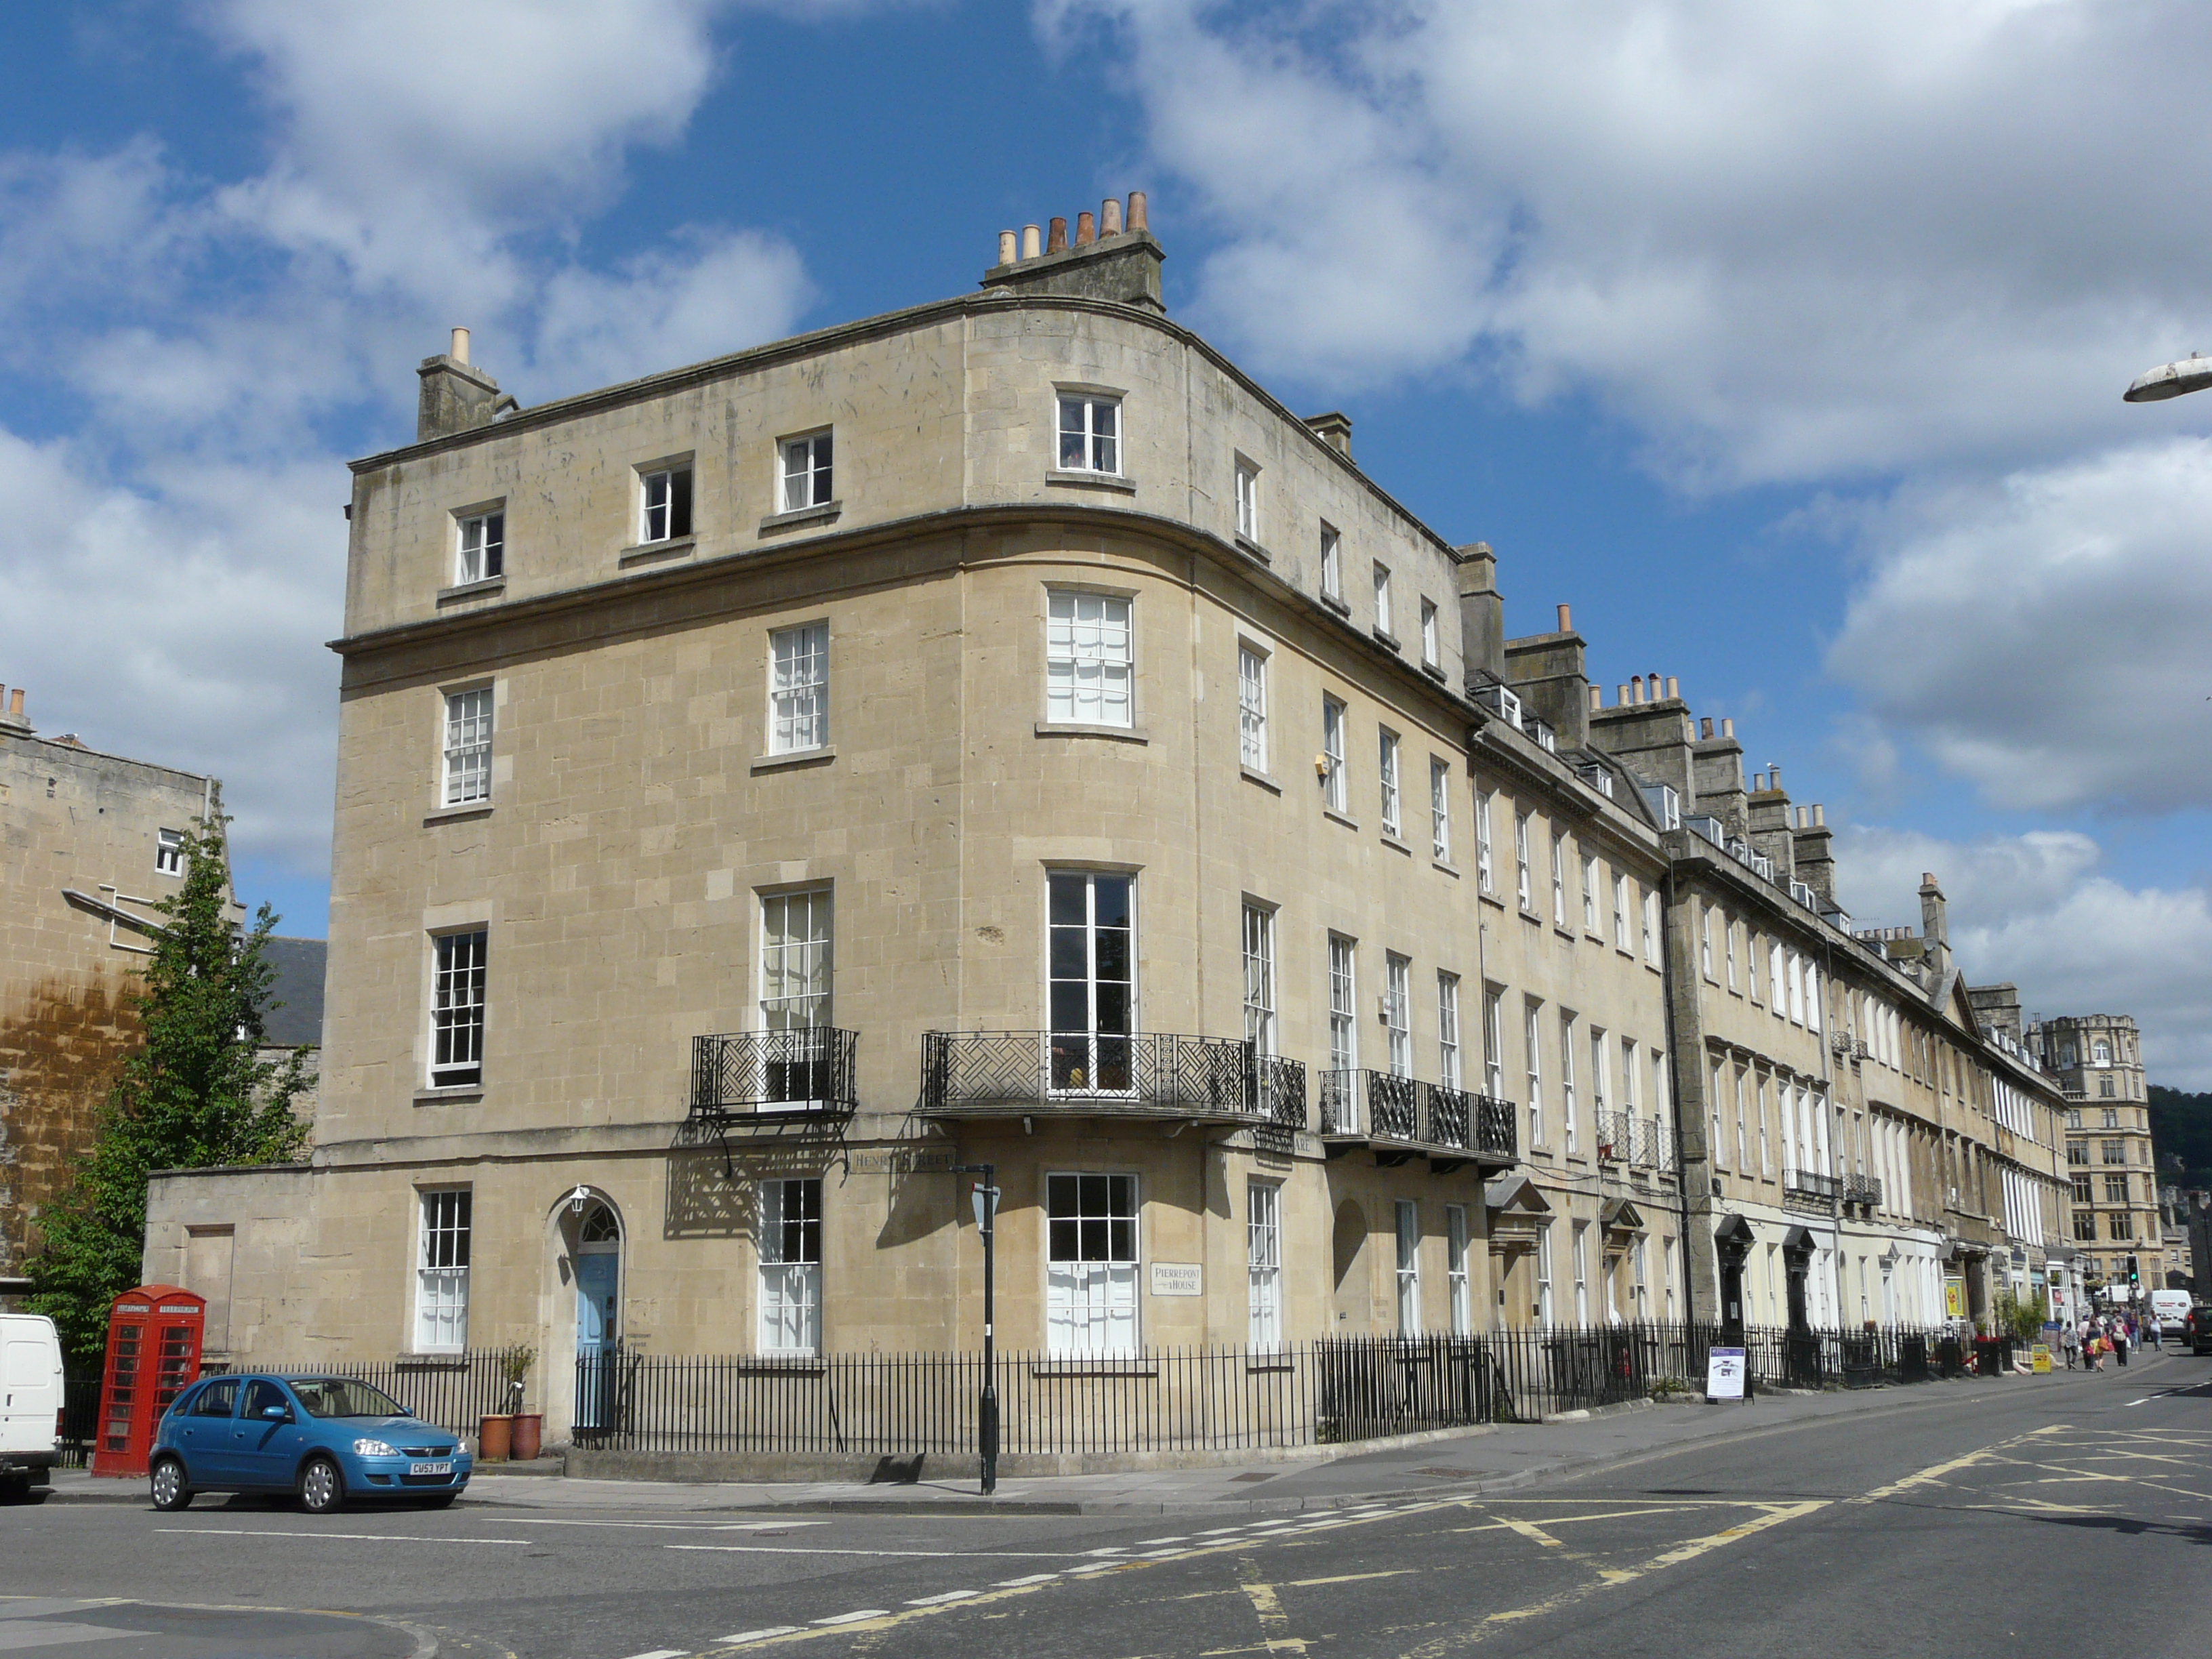 A four-storey stone building on the end of a row of houses on a sunny day